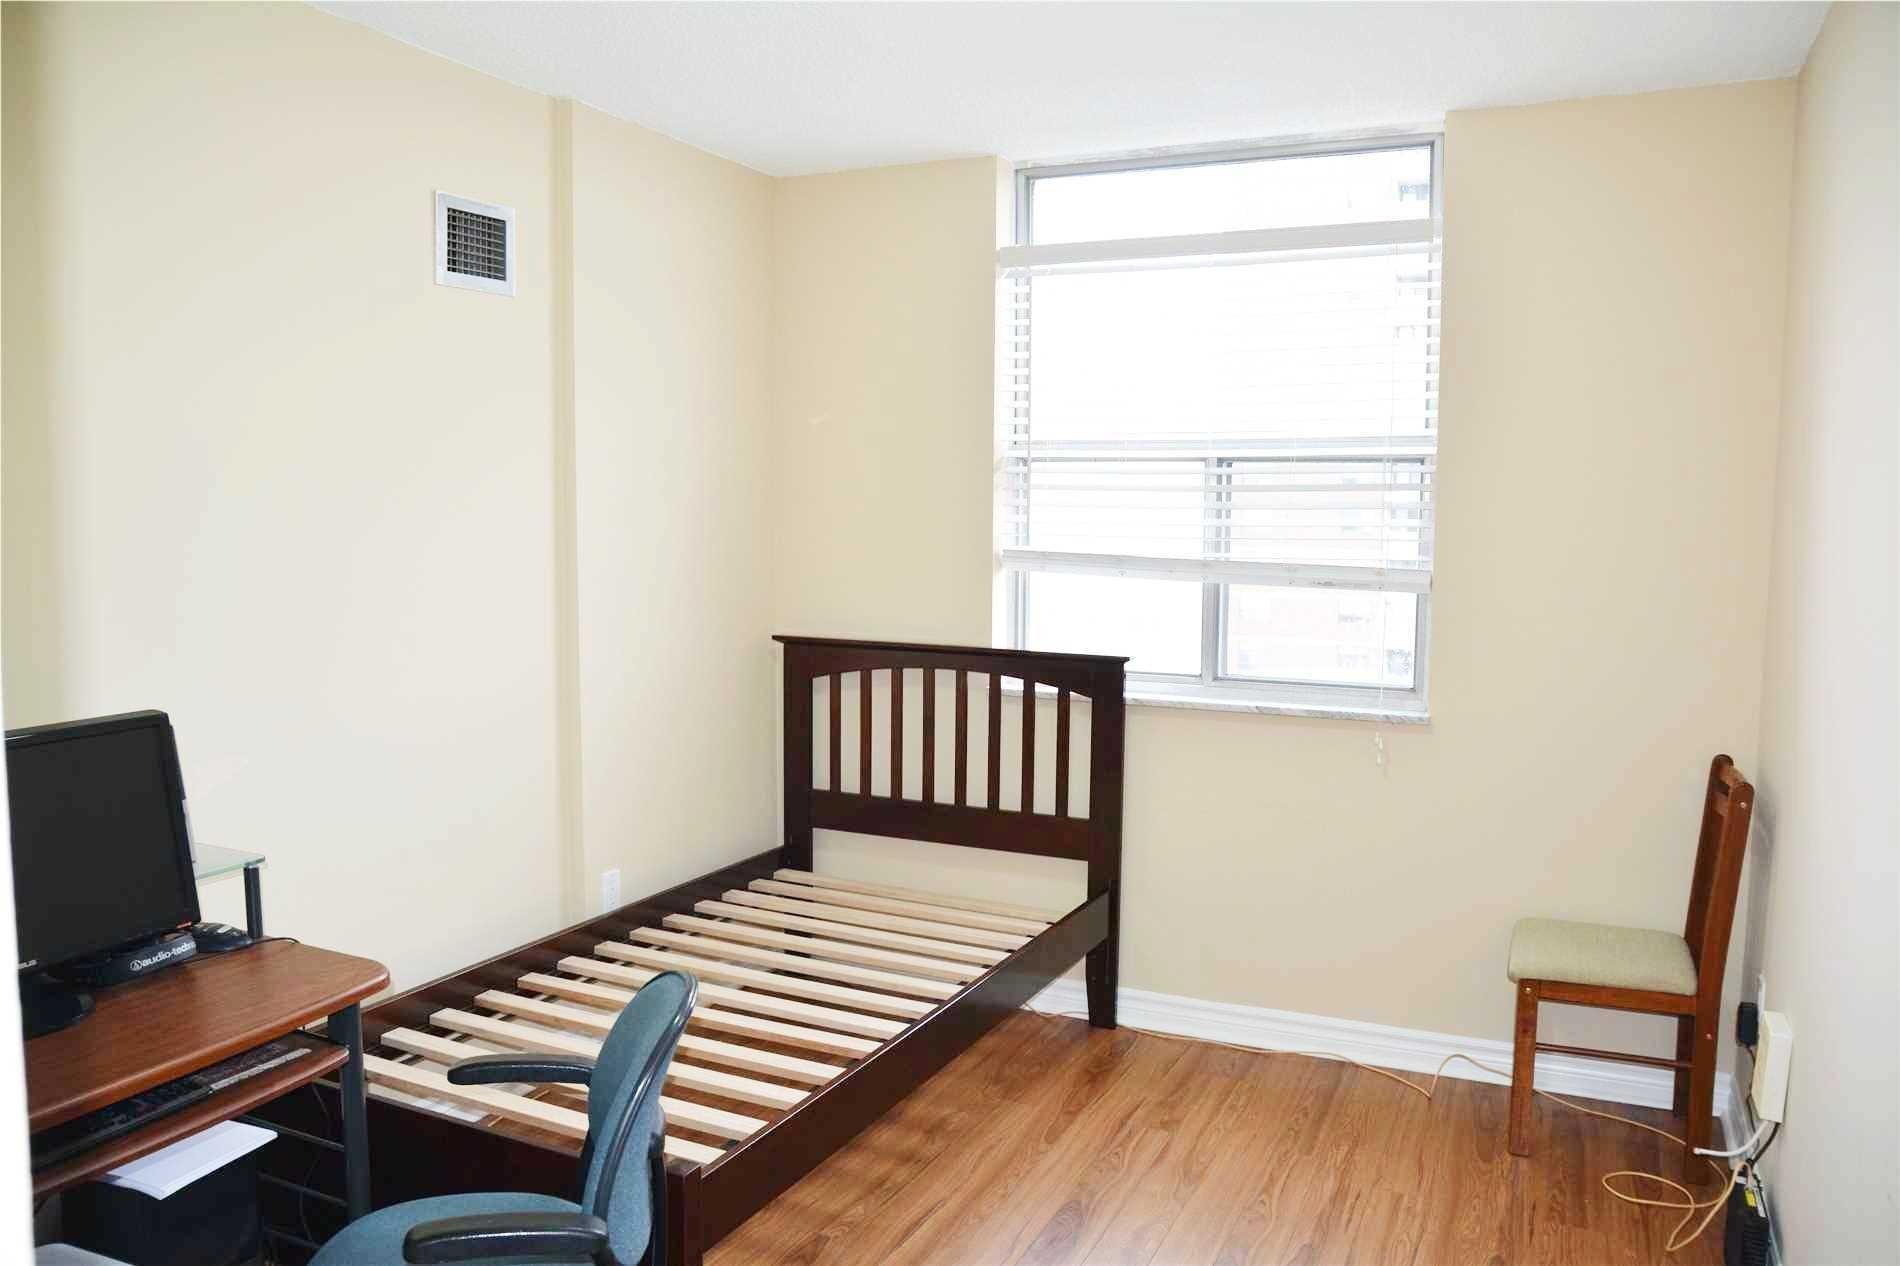 Image 2 of 14 showing inside of 3 Bedroom Condo Apt Apartment for Lease at 205 Hilda Ave Unit# 2104, Toronto M2M4B1